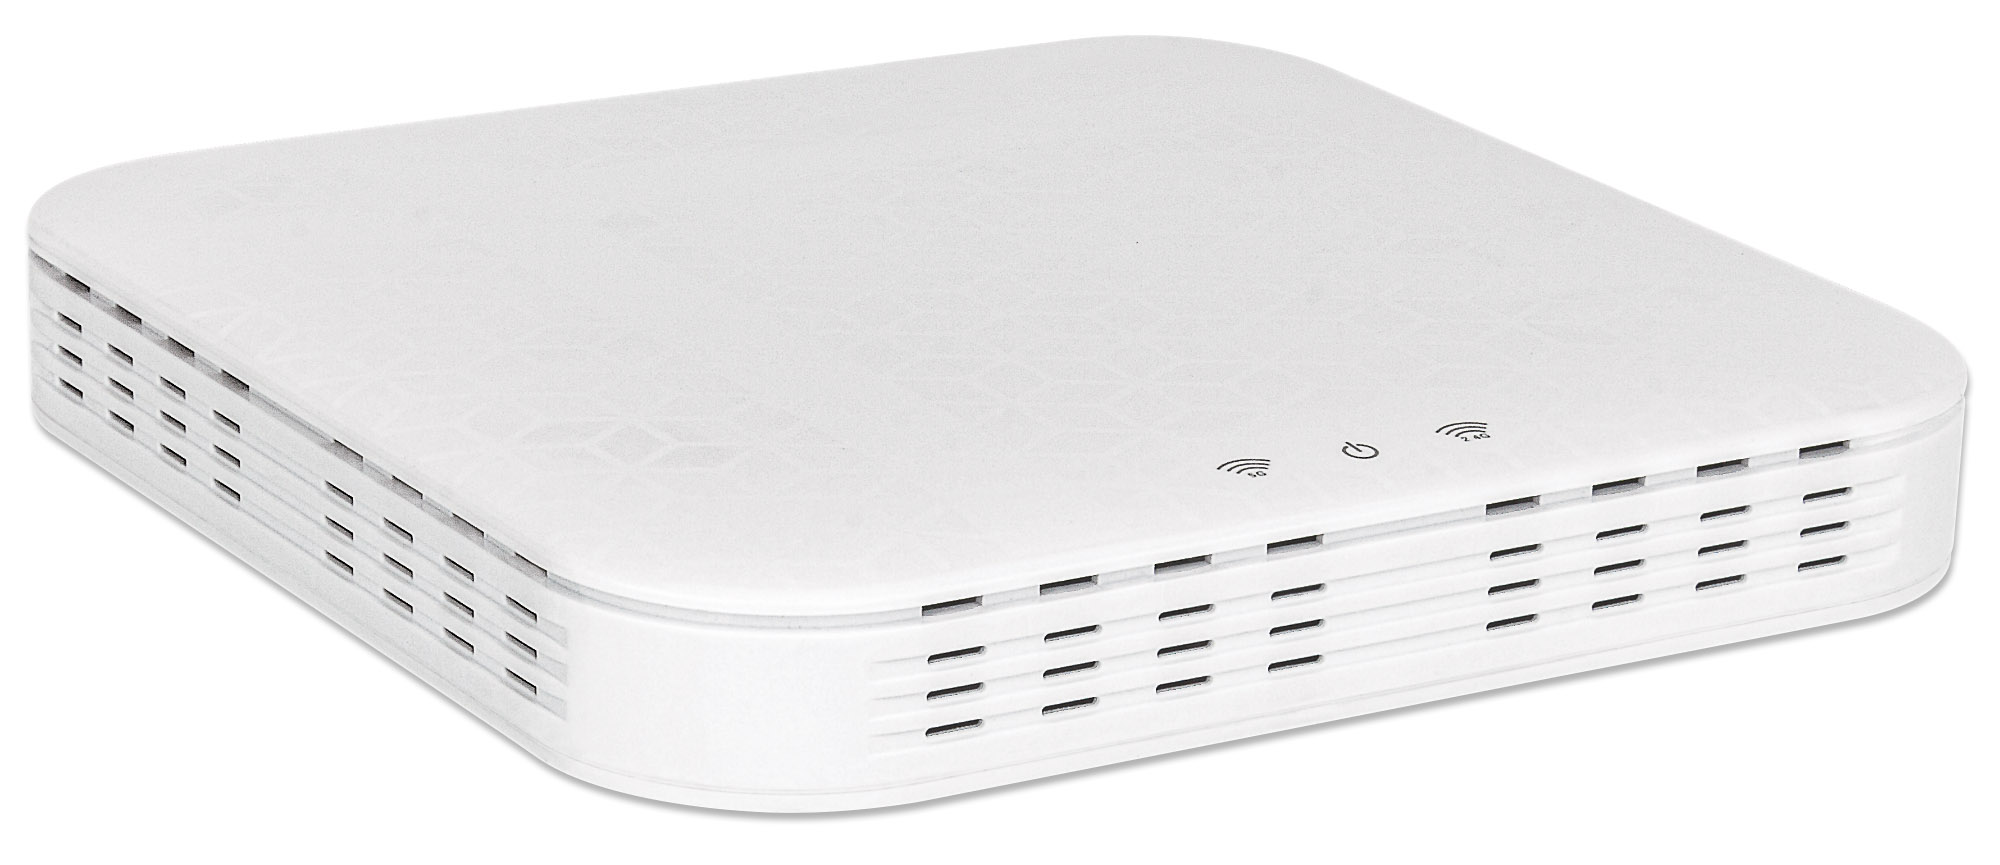 Manageable Wireless AC1300 Dual-Band Gigabit PoE Indoor Access Point and Router